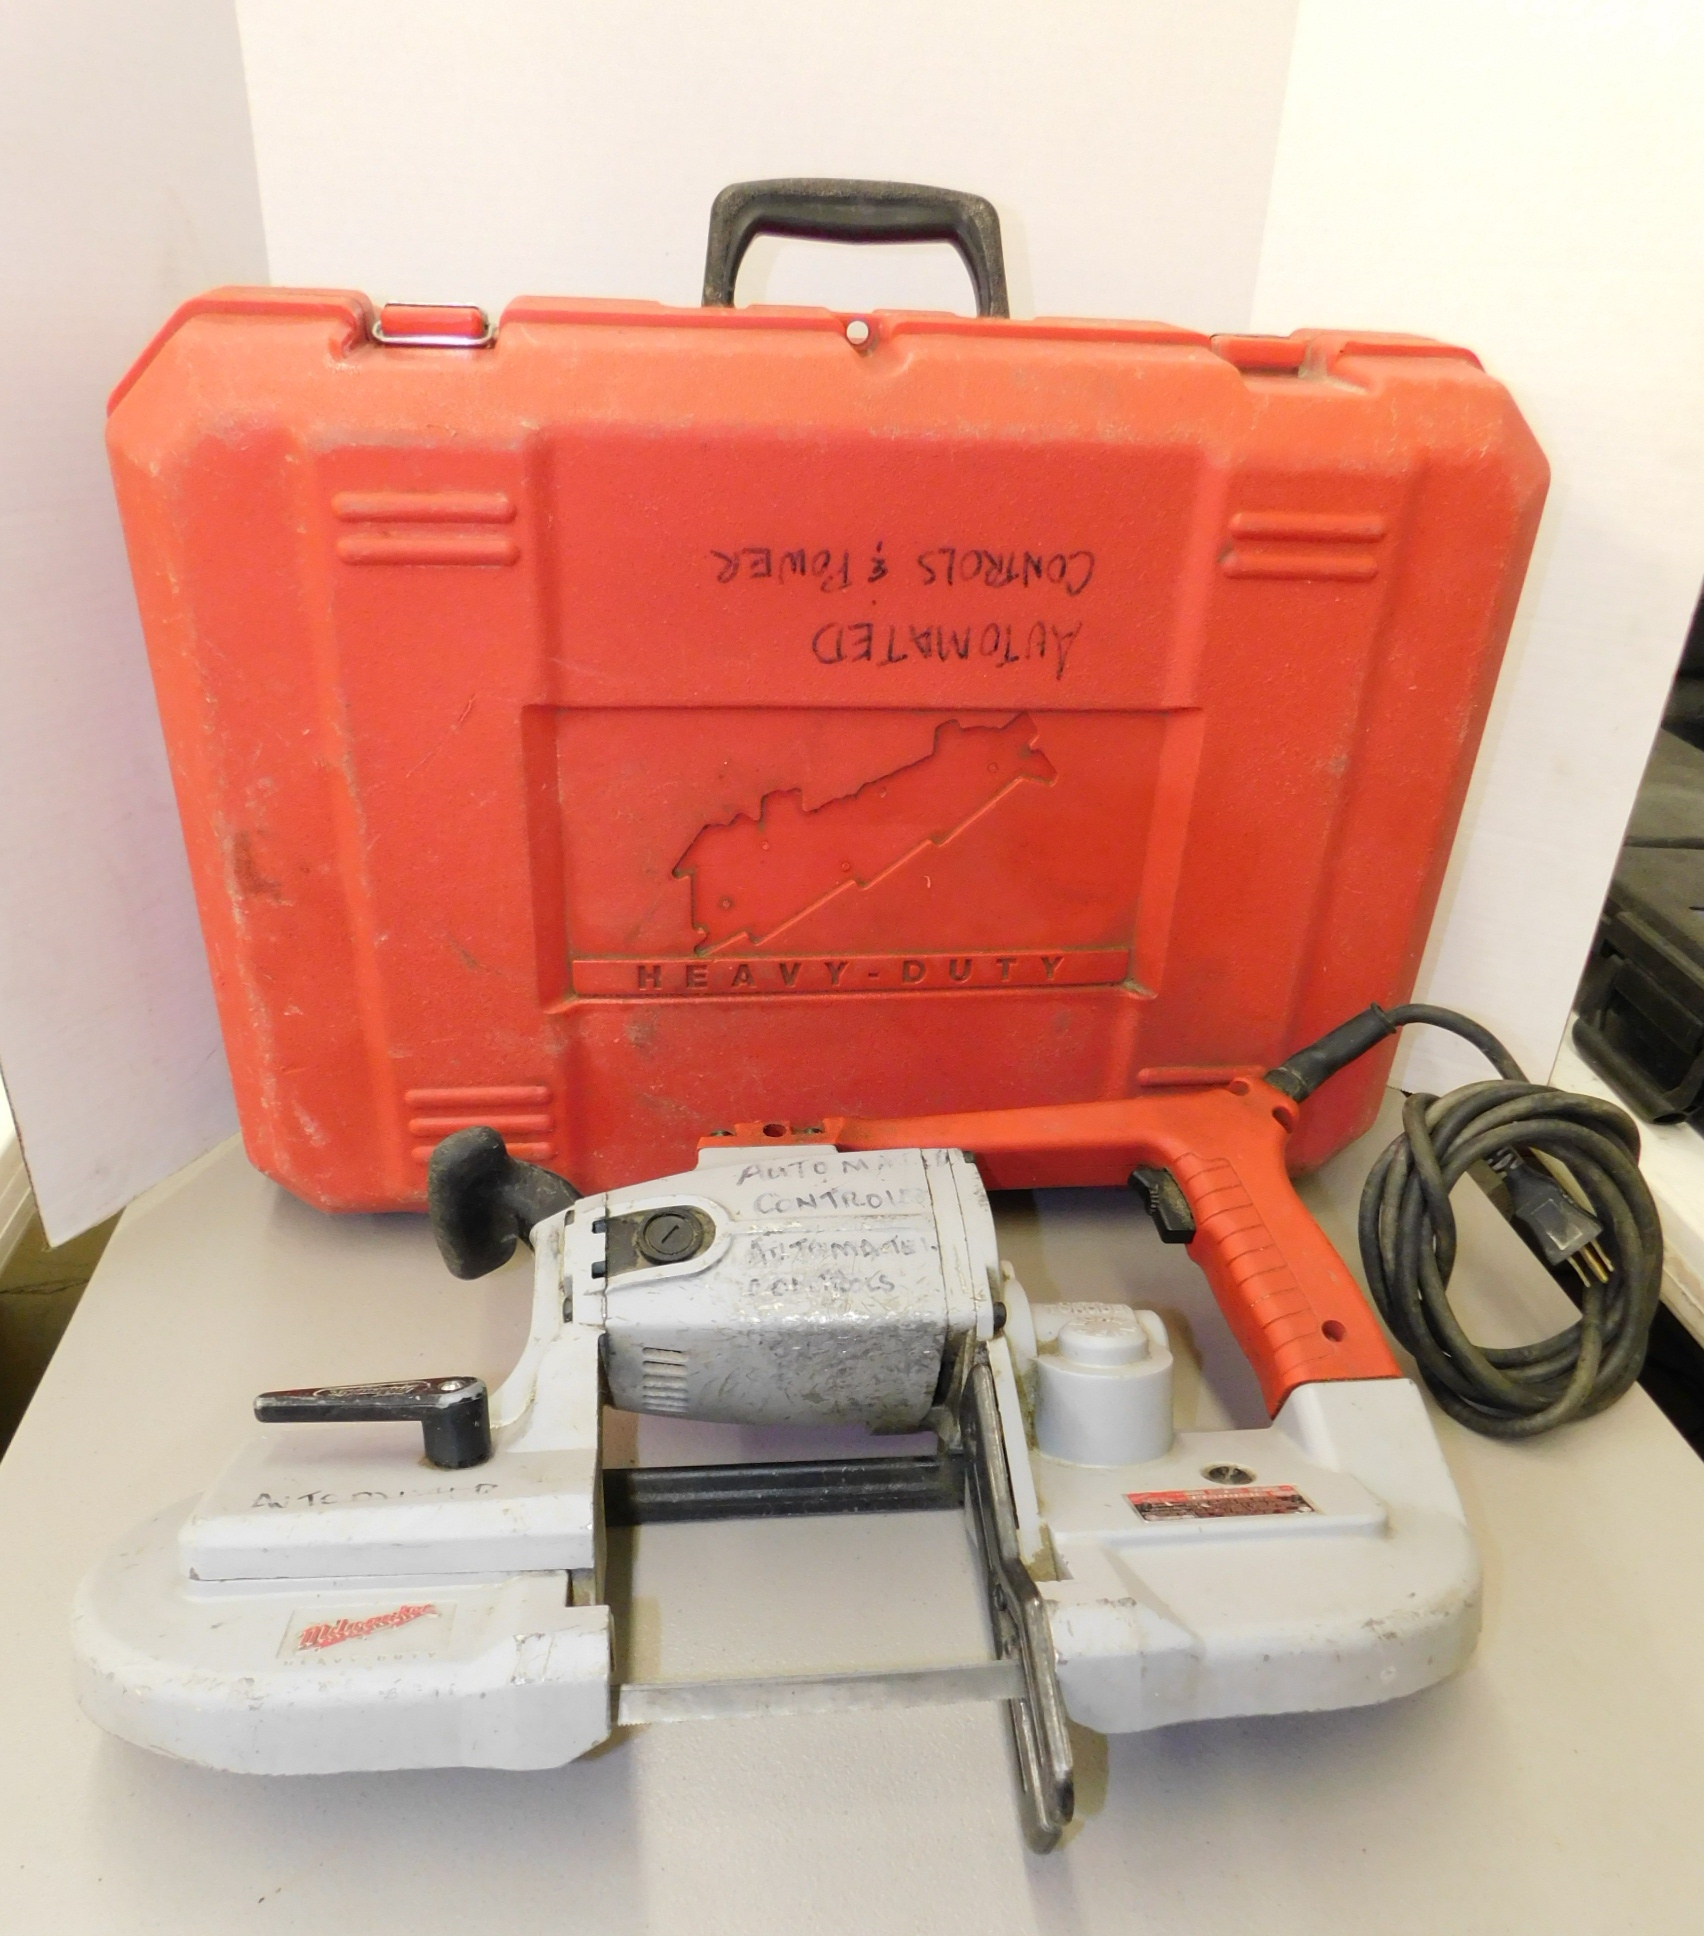 Lot 264 - Milwaukee Model 6230 Portable Bandsaw with Case